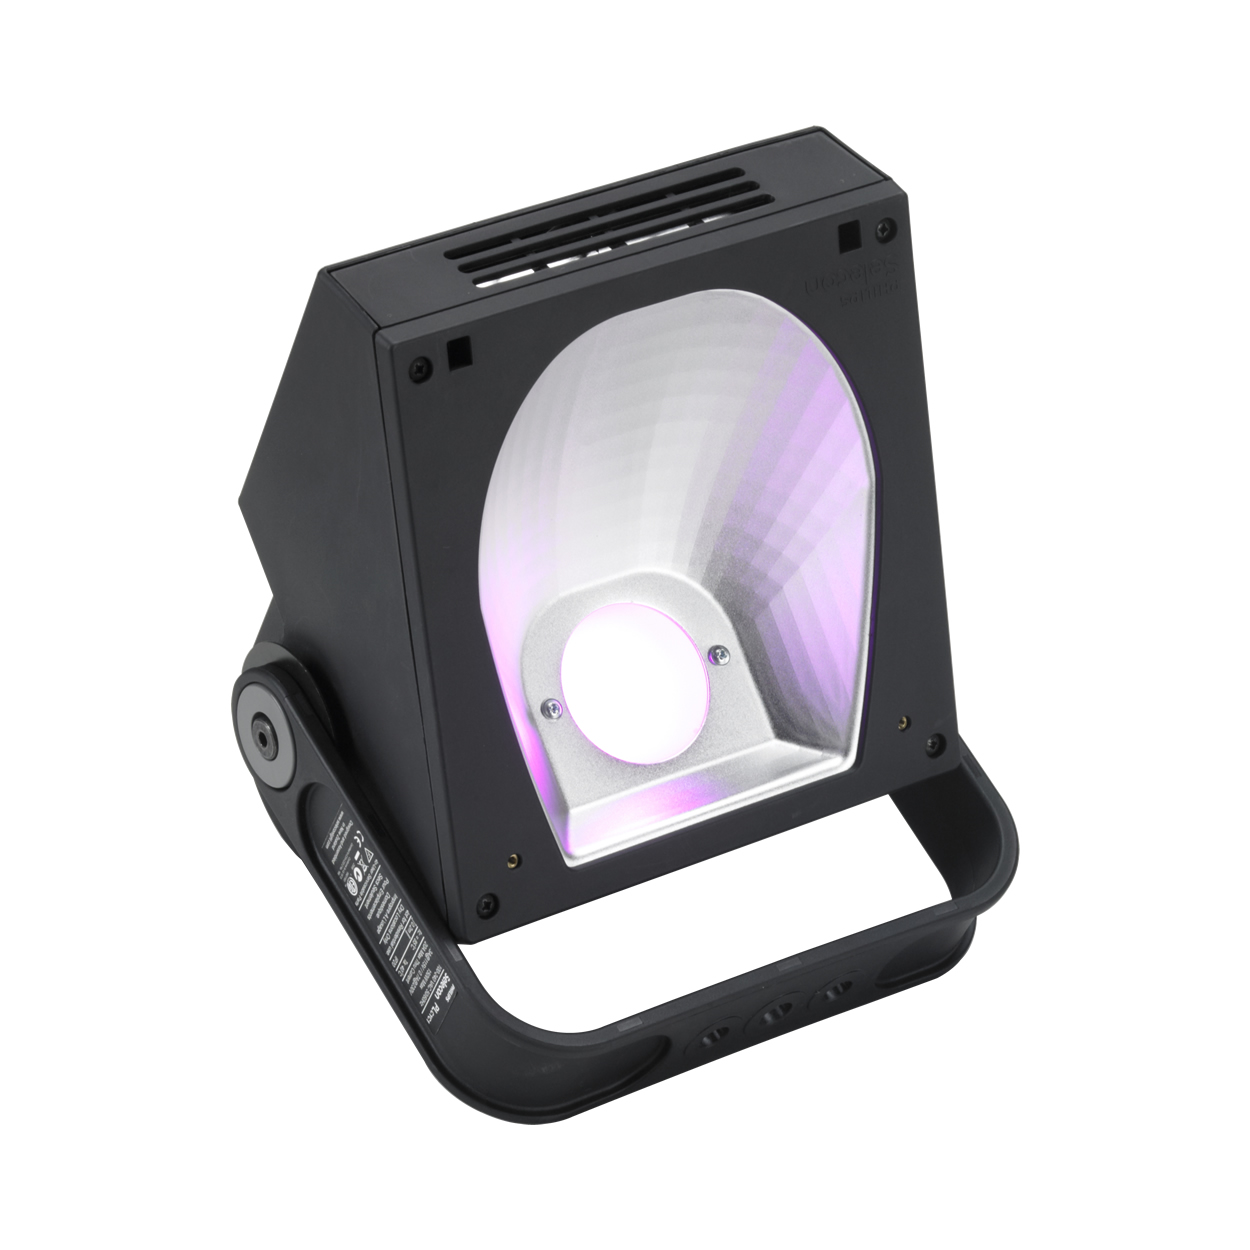 Philips Selecon PLCYC1 LED Luminaire